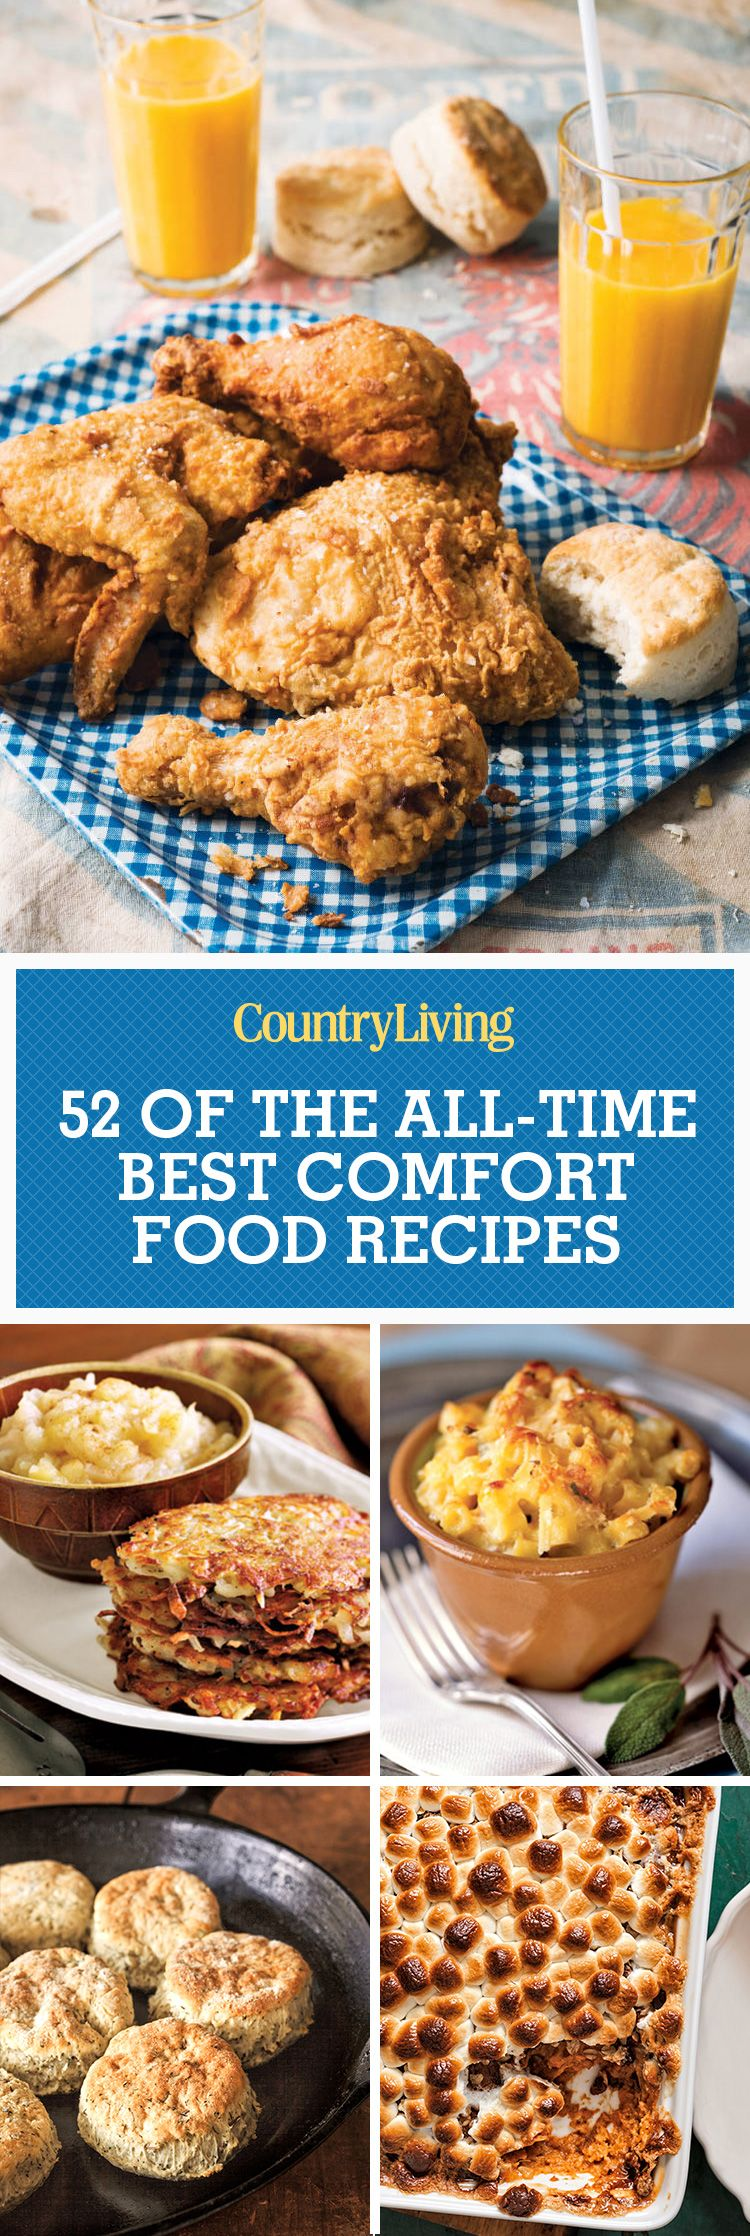 55 easy comfort food recipes best southern comfort food ideas forumfinder